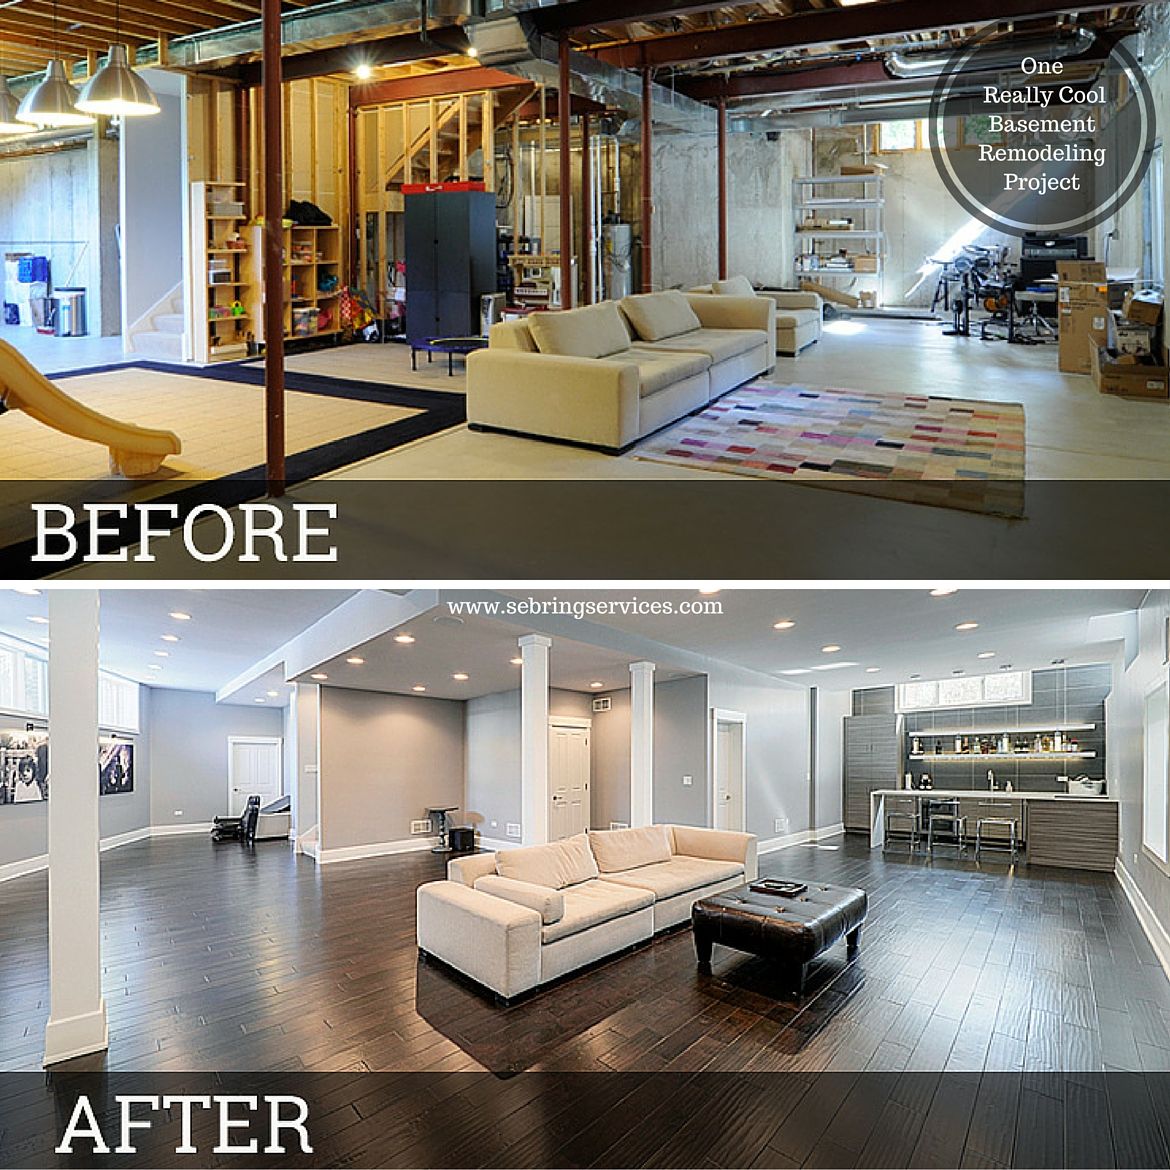 Before & After: One Really Cool Basement Remodeling Project